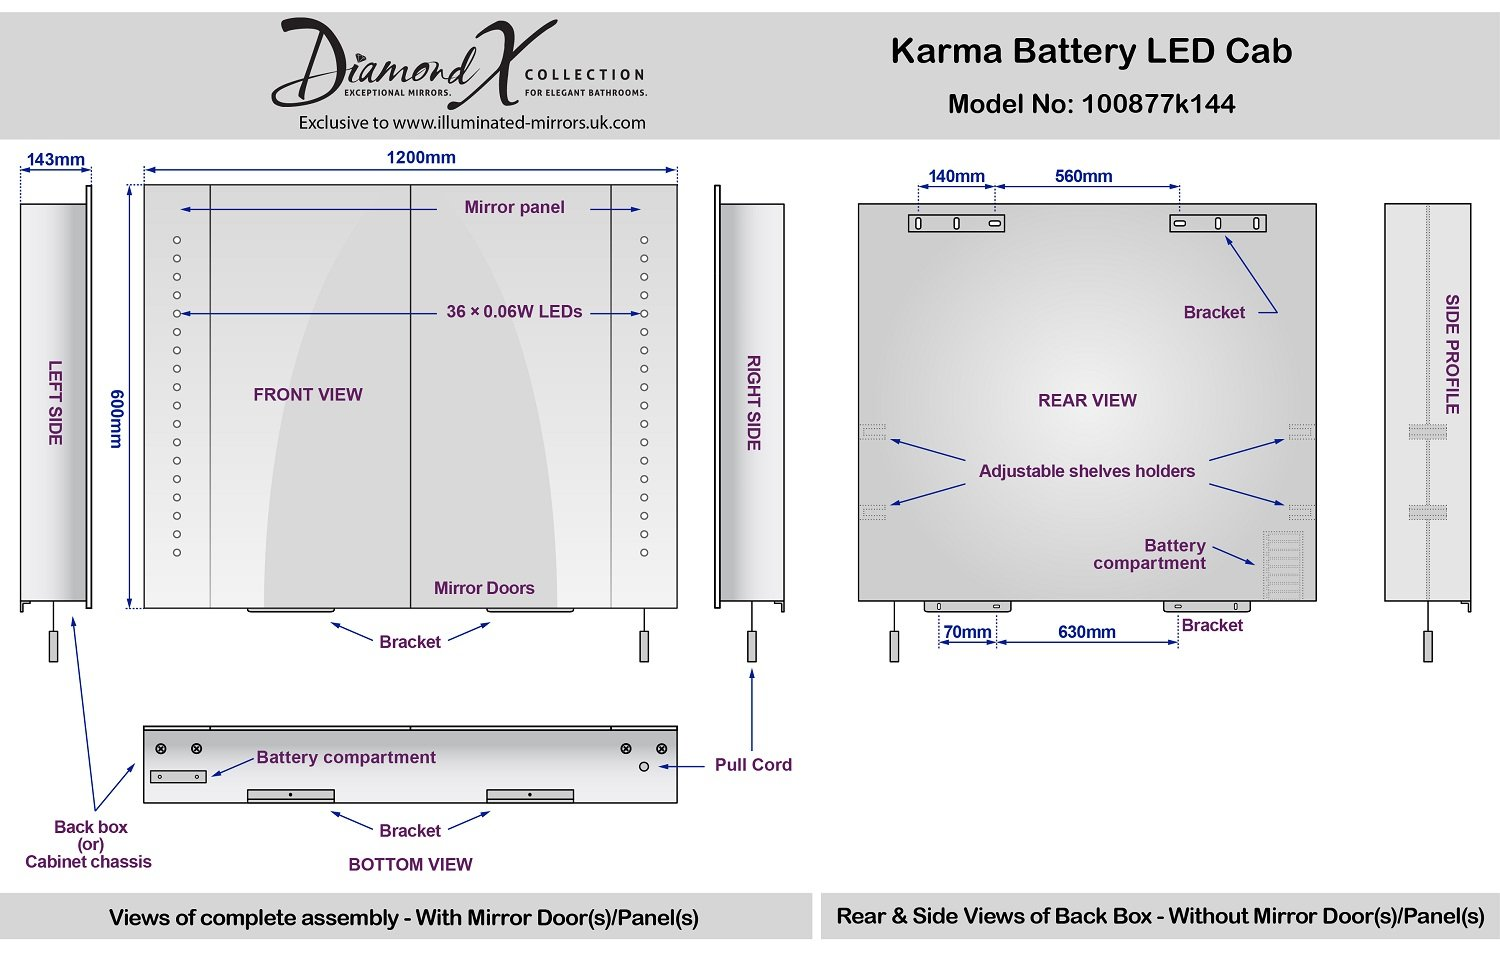 Karma LED Illuminated Battery Bathroom Mirror Cabinet With Pull Cord K144 Amazoncouk Kitchen Home